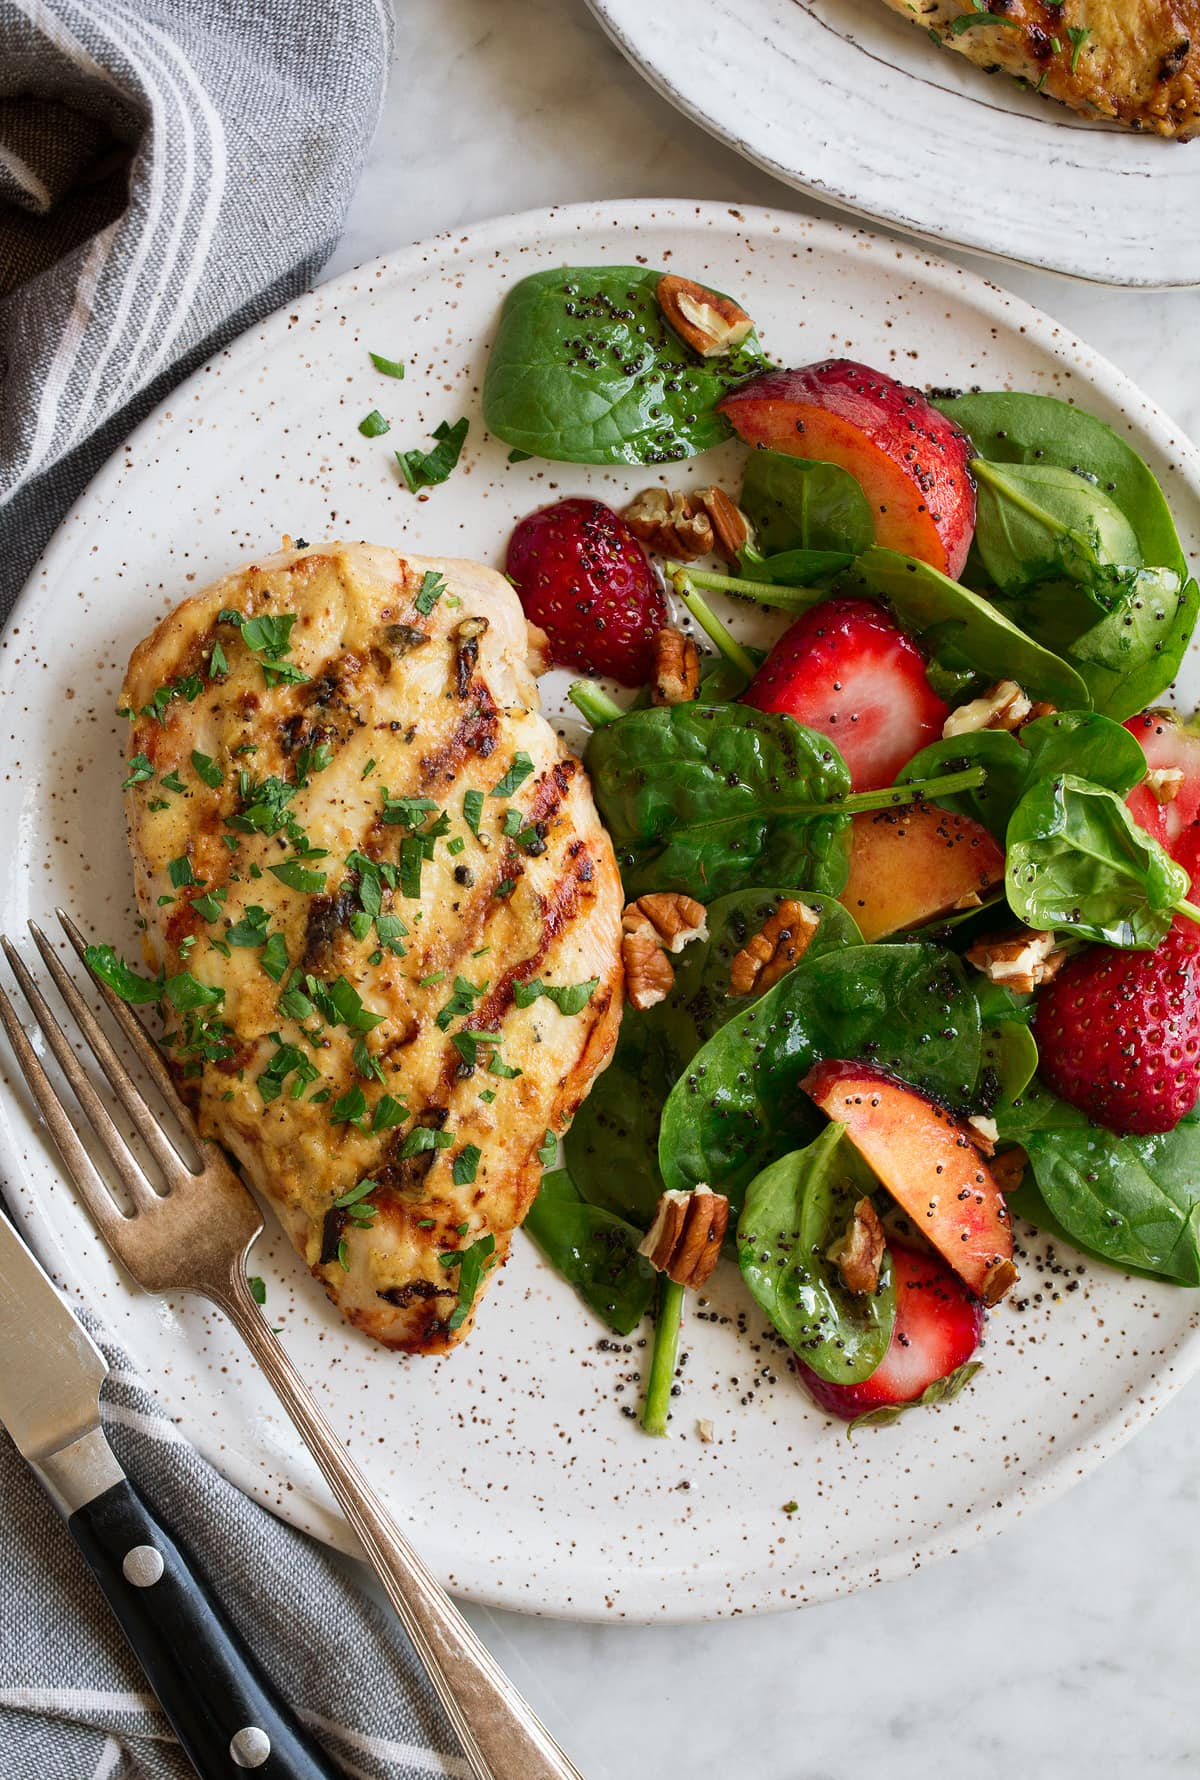 Dijon chicken shown on a serving plate with a side of spinach strawberry salad and poppy seed dressing.